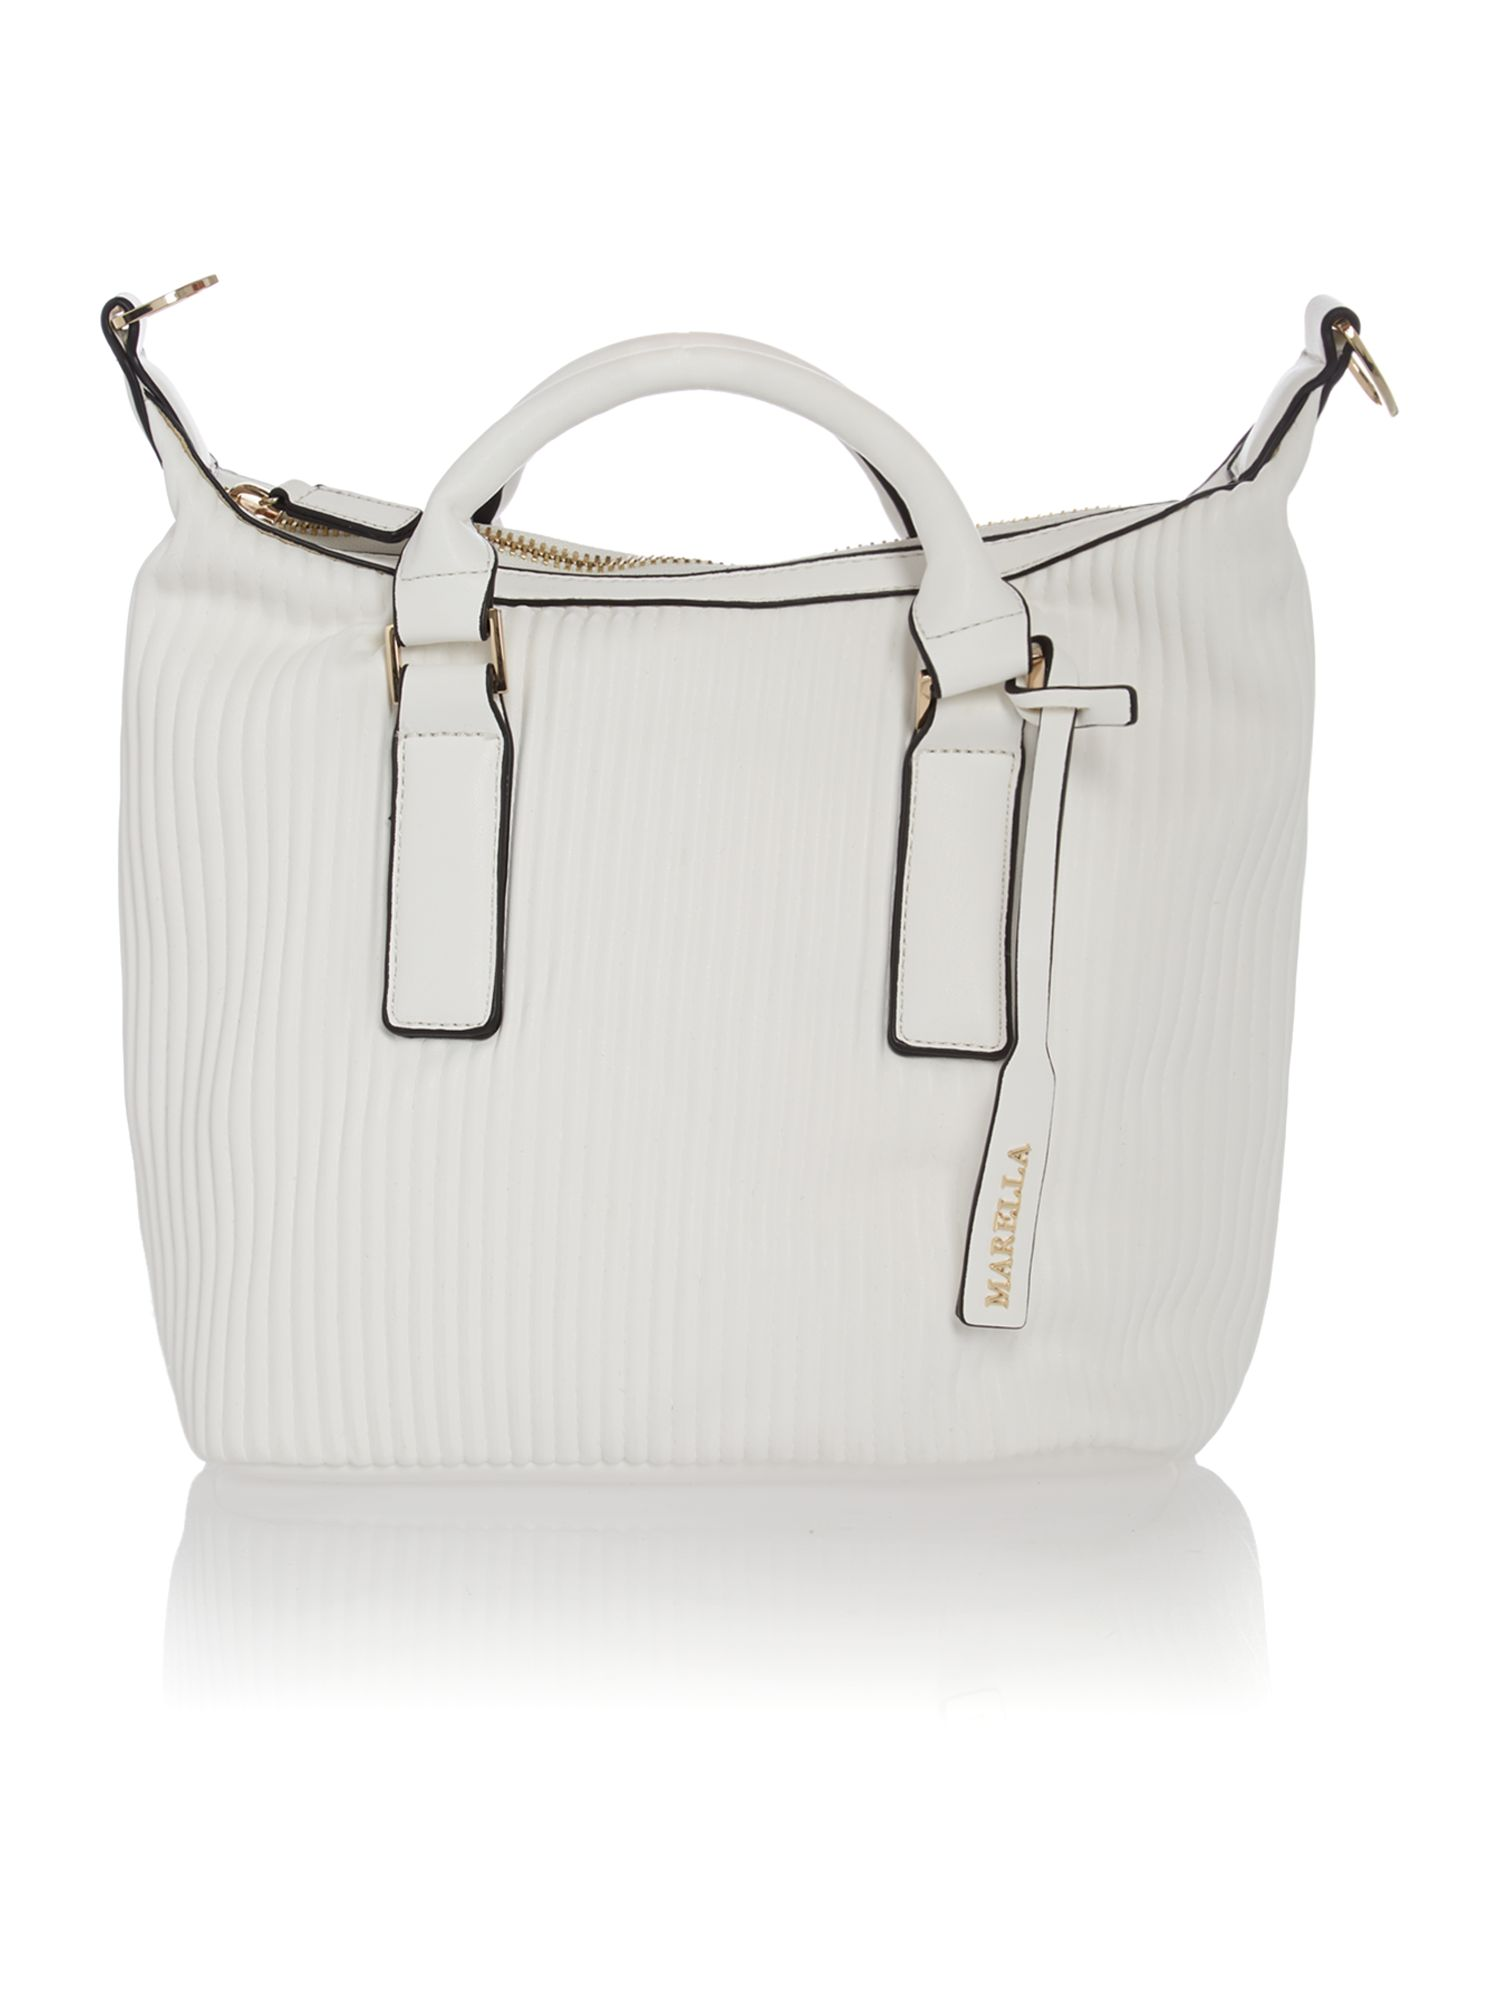 White segreto tote bag